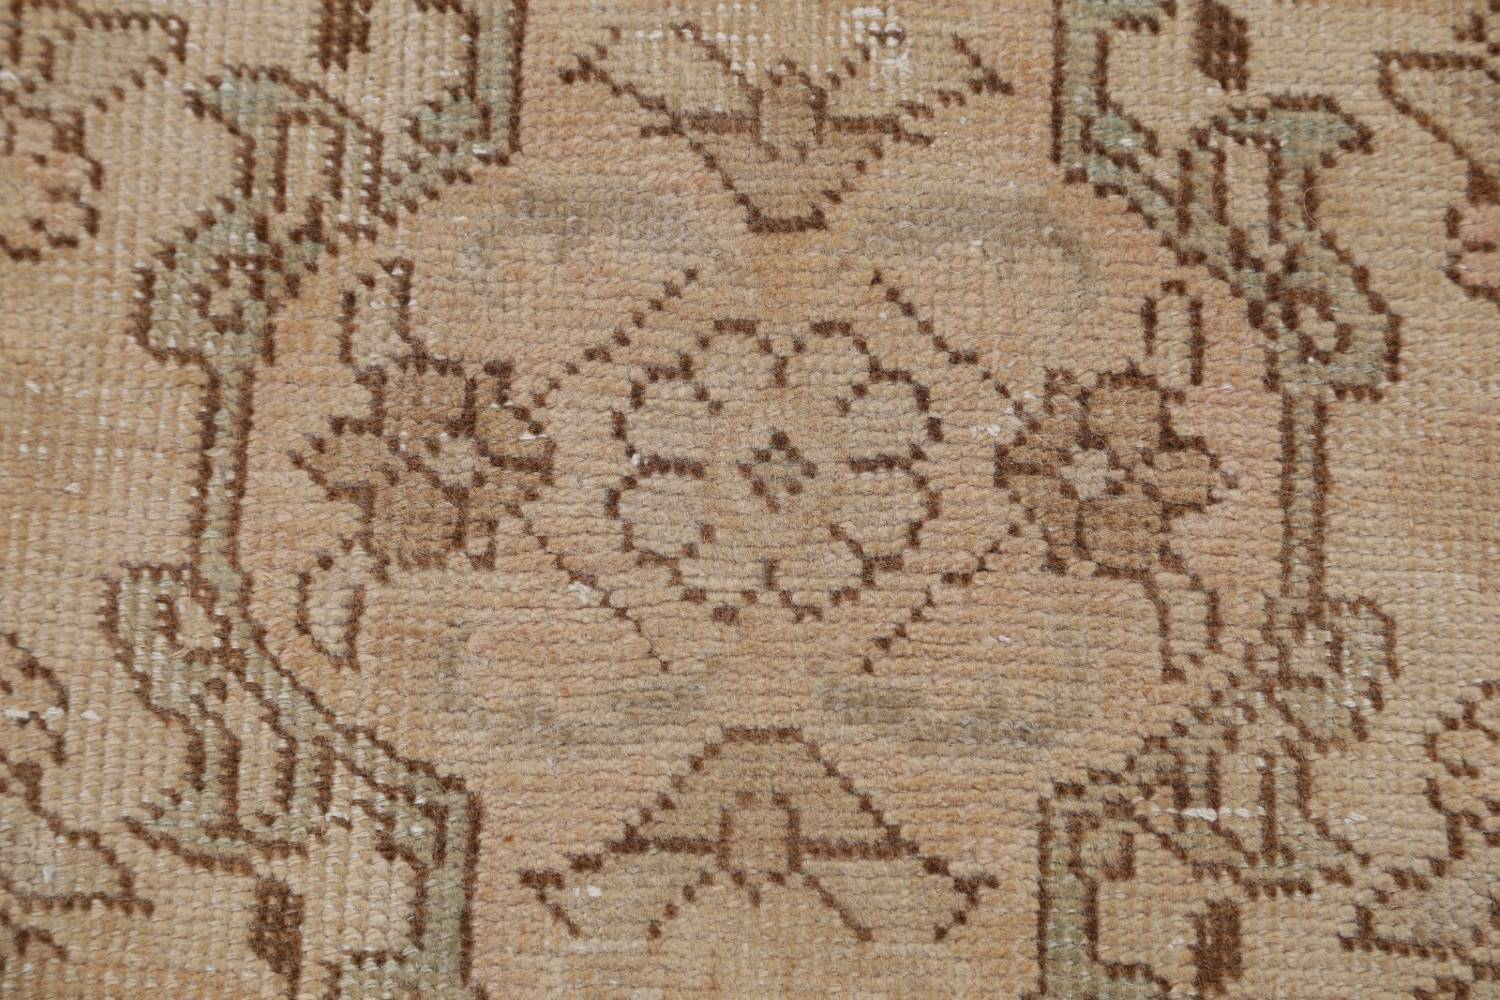 Muted Tabriz Persian Hand-Knotted 9x12 Wool Distressed Area Rug image 11